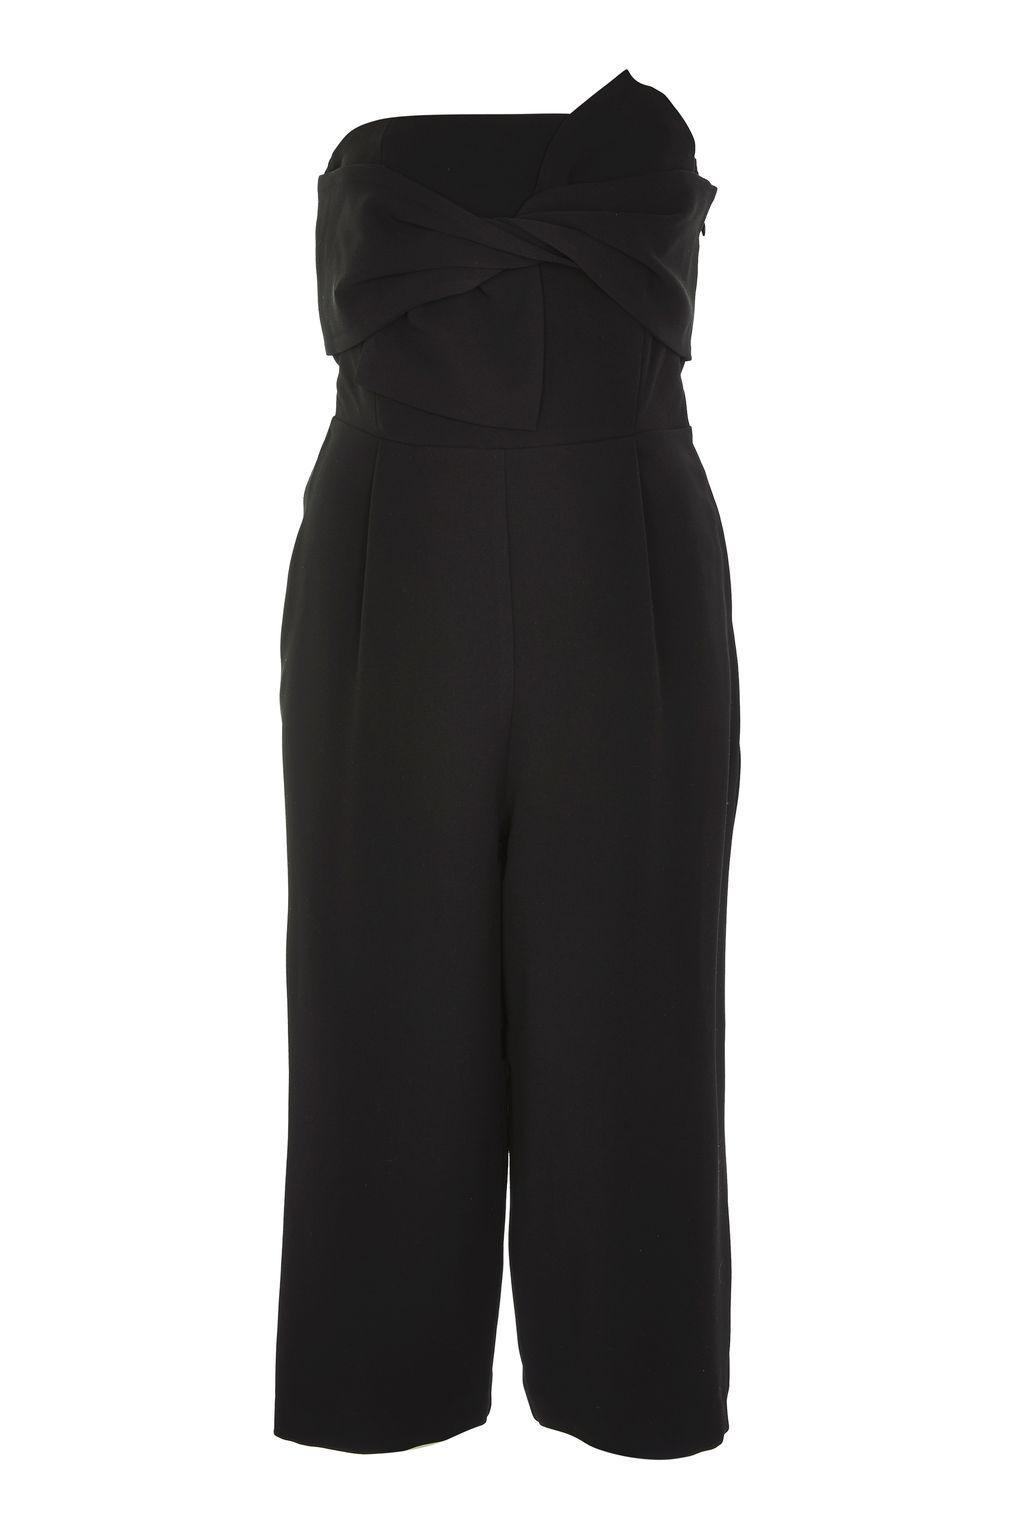 a11e13666367 Shop Petite clothing at Topshop. Tall Playsuit ...